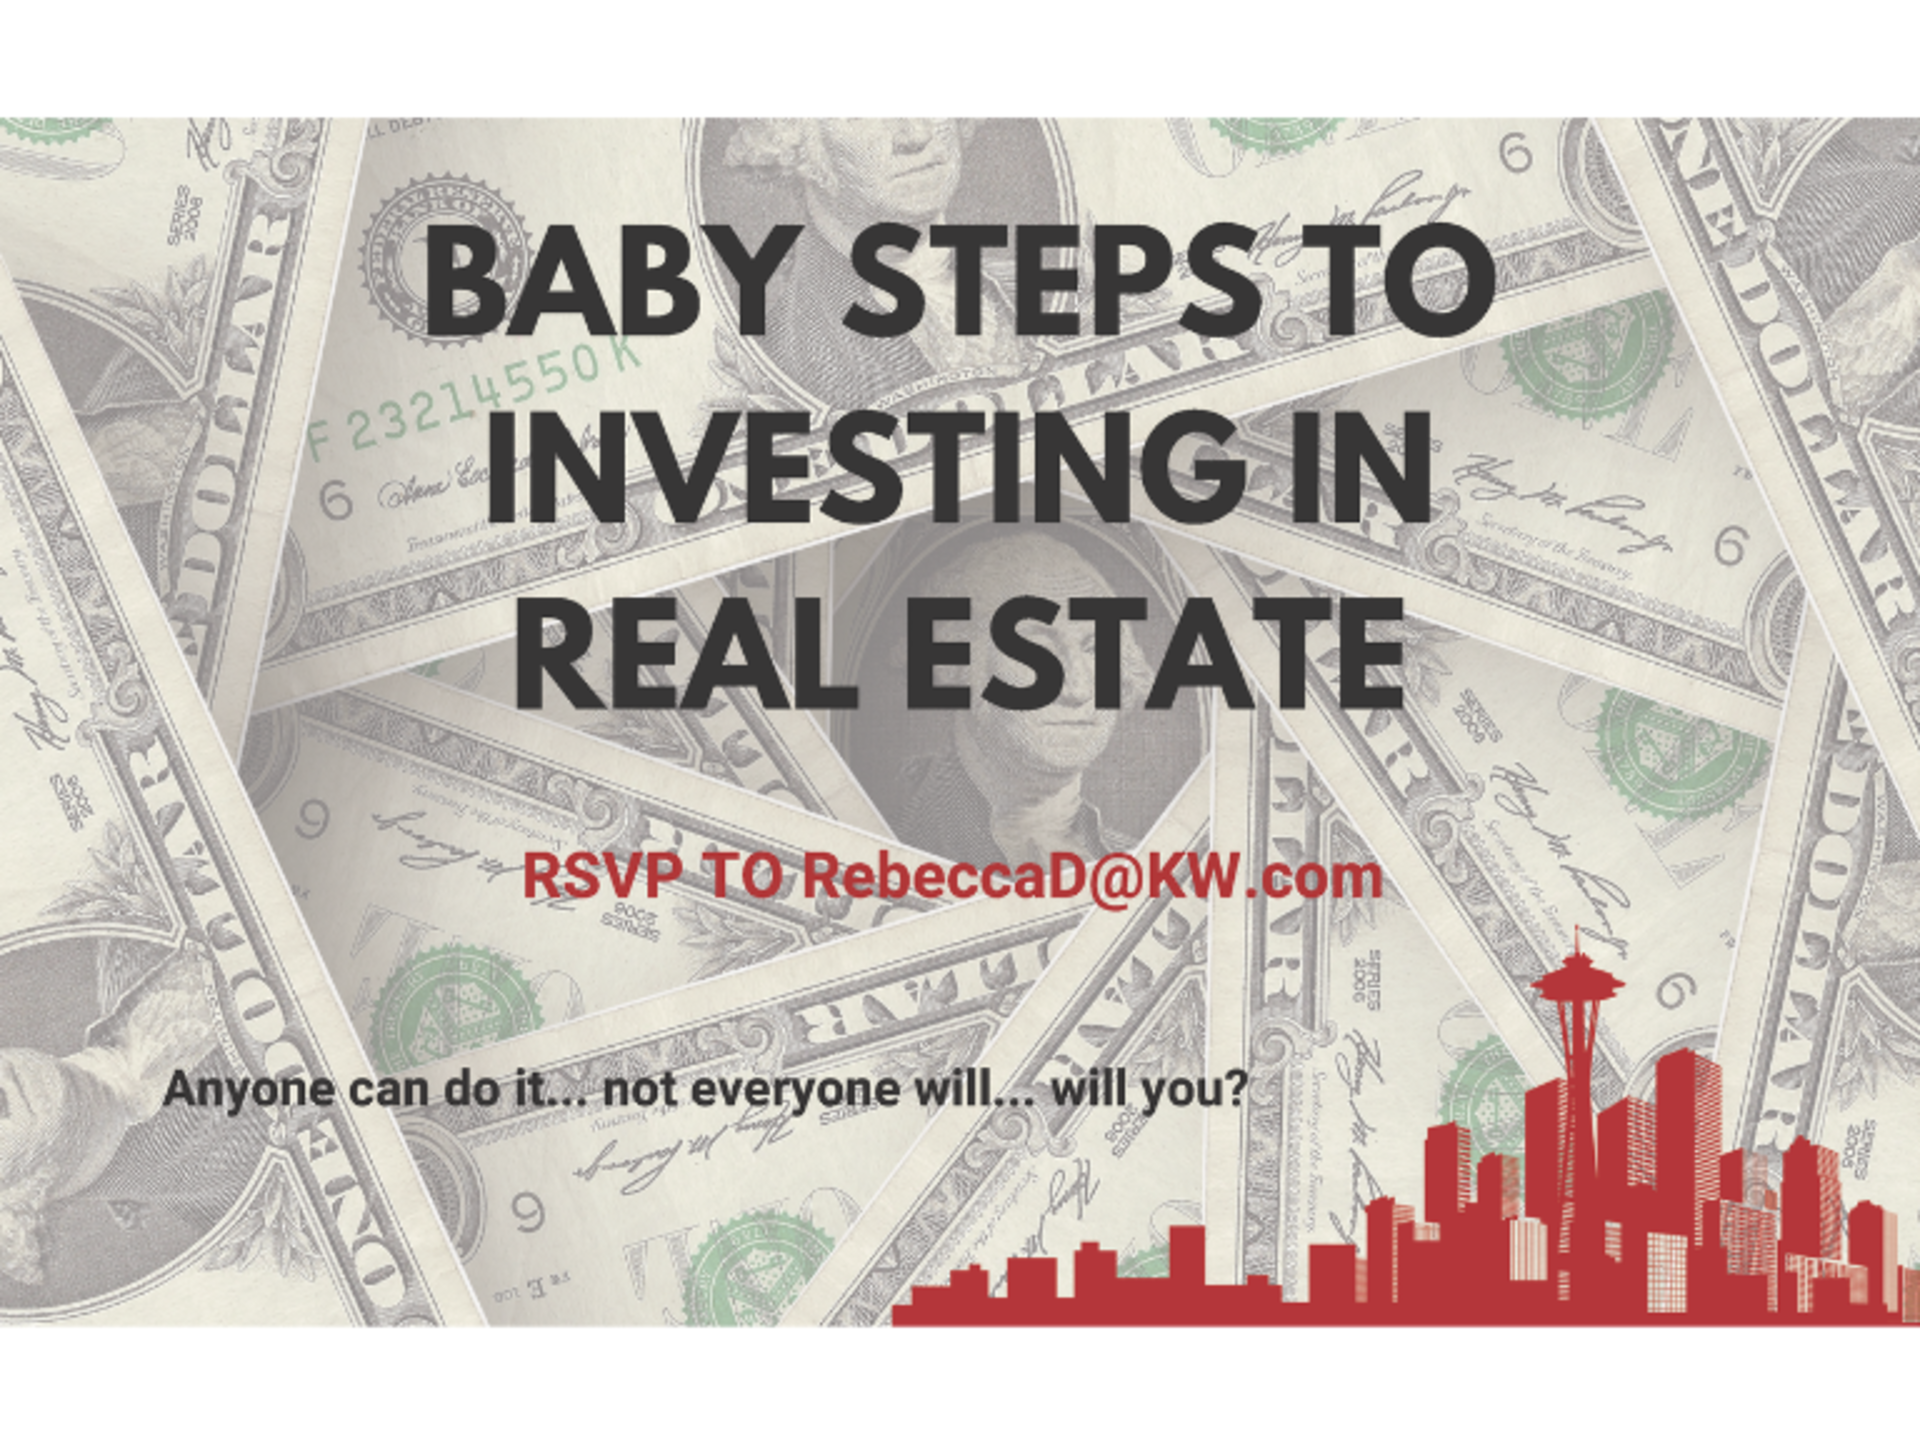 Baby Steps to Investing in Real Estate